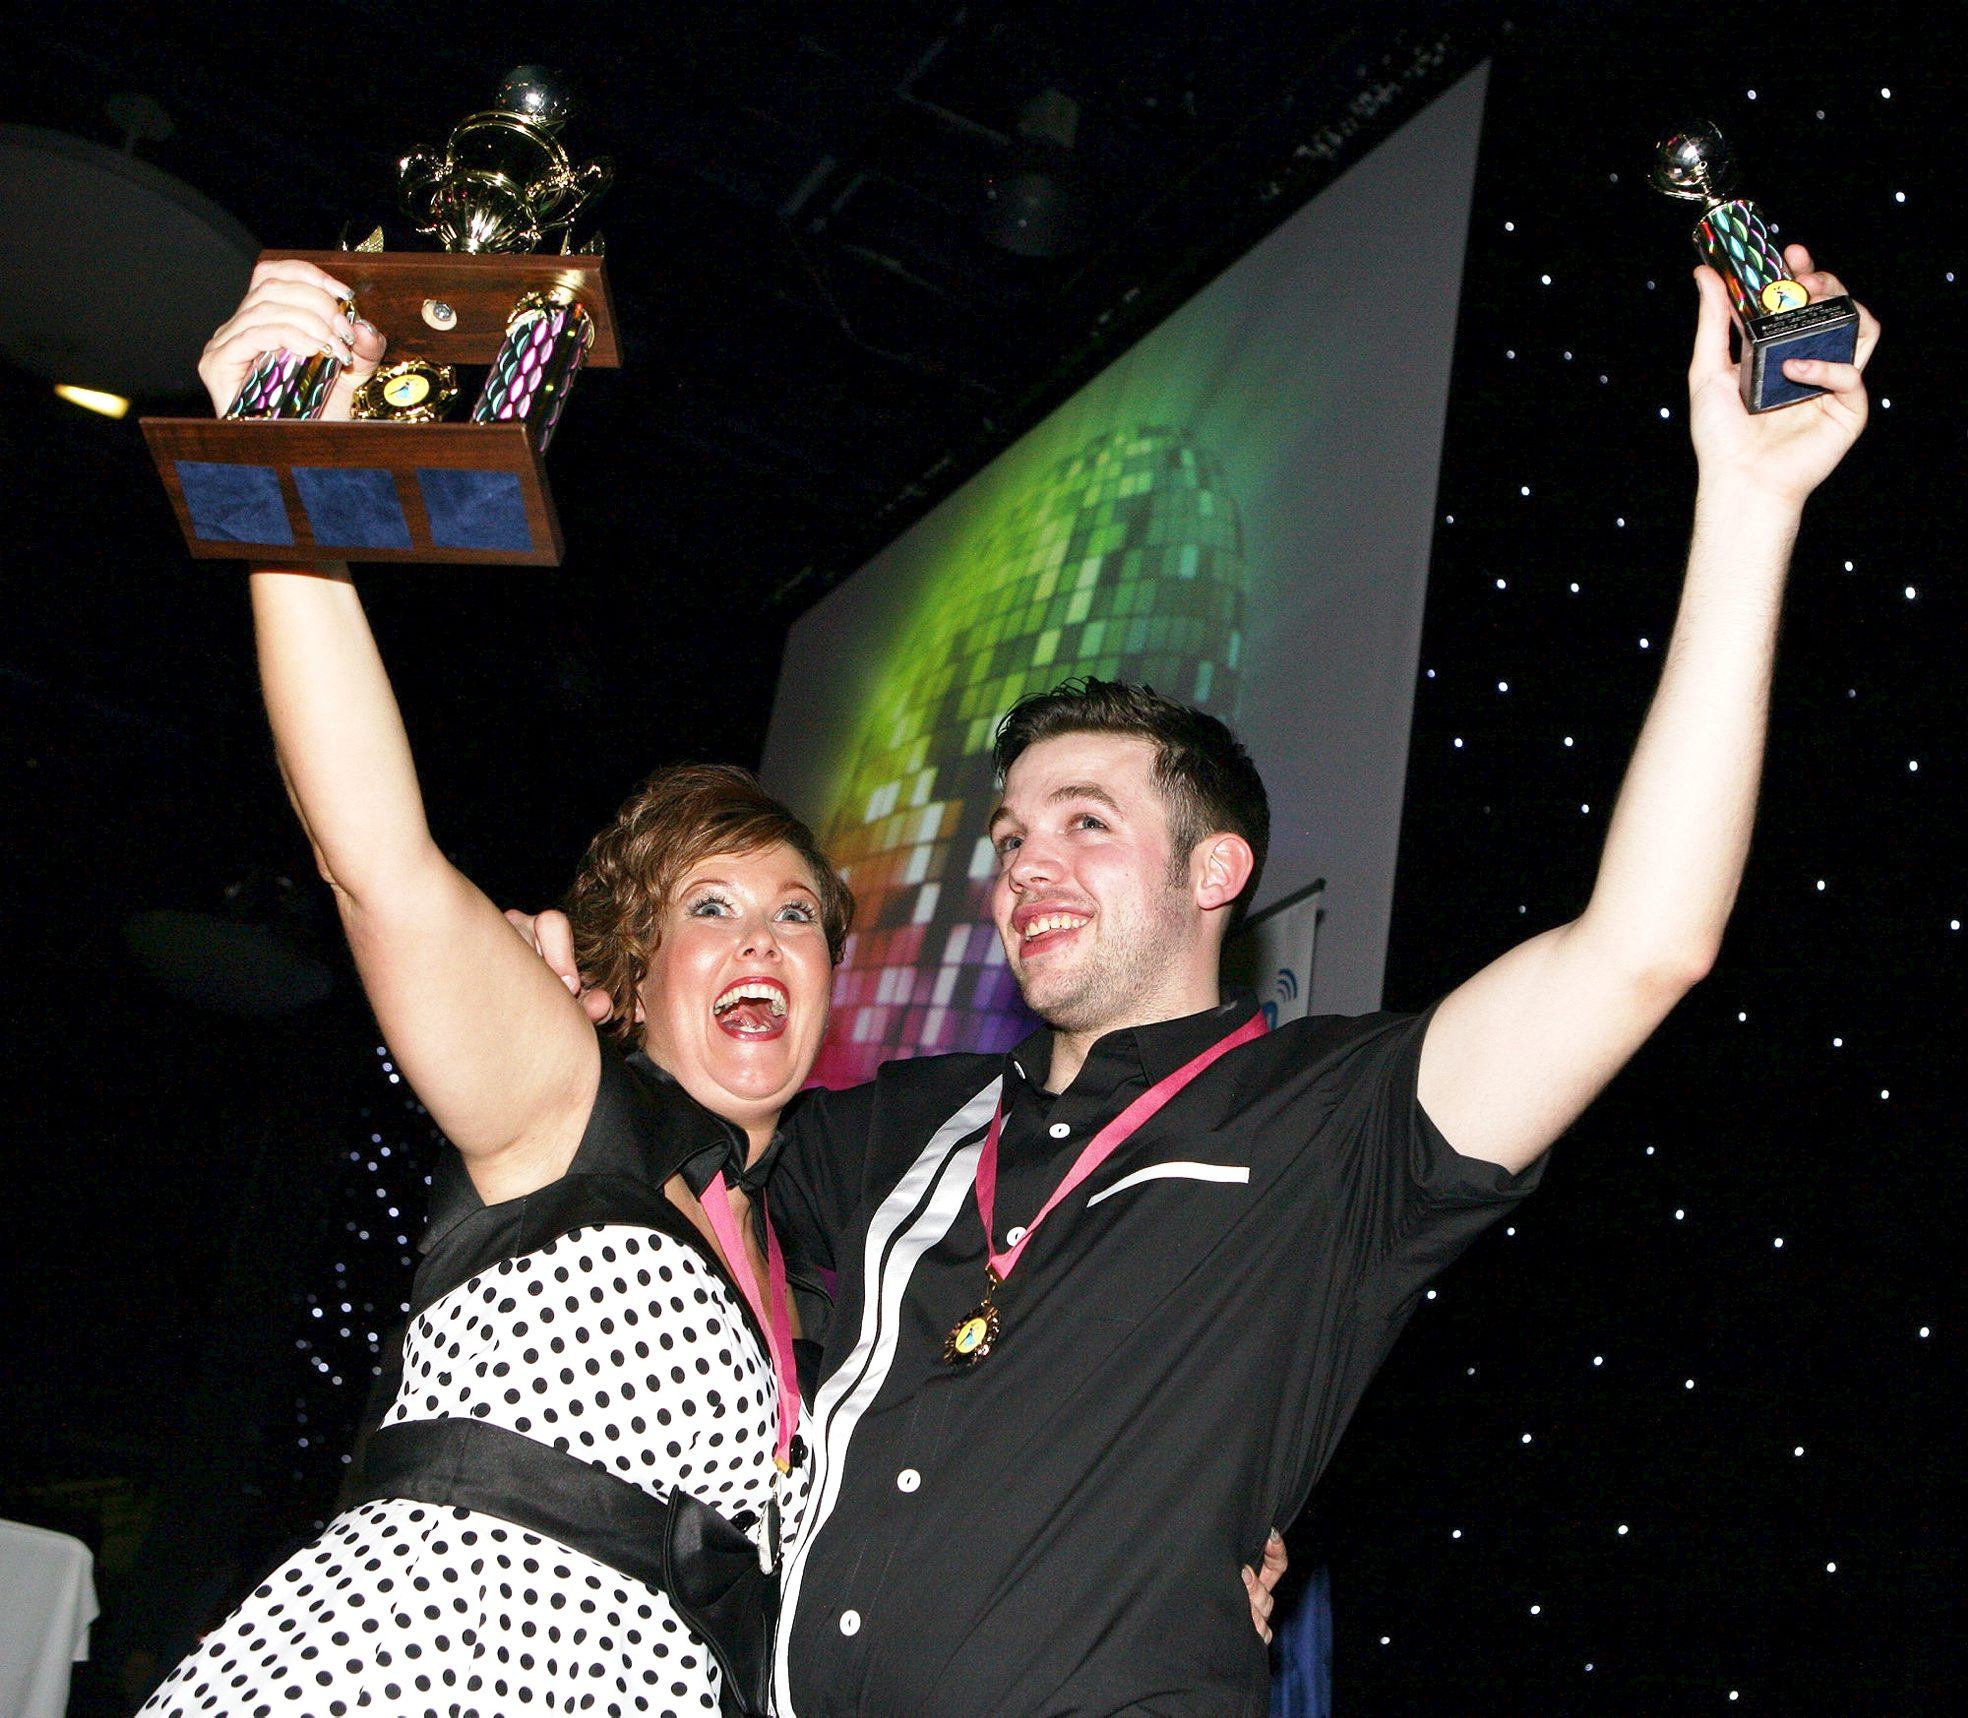 Strictly Sensational! Our reporter and partner win Strictly Learn to Dance competition